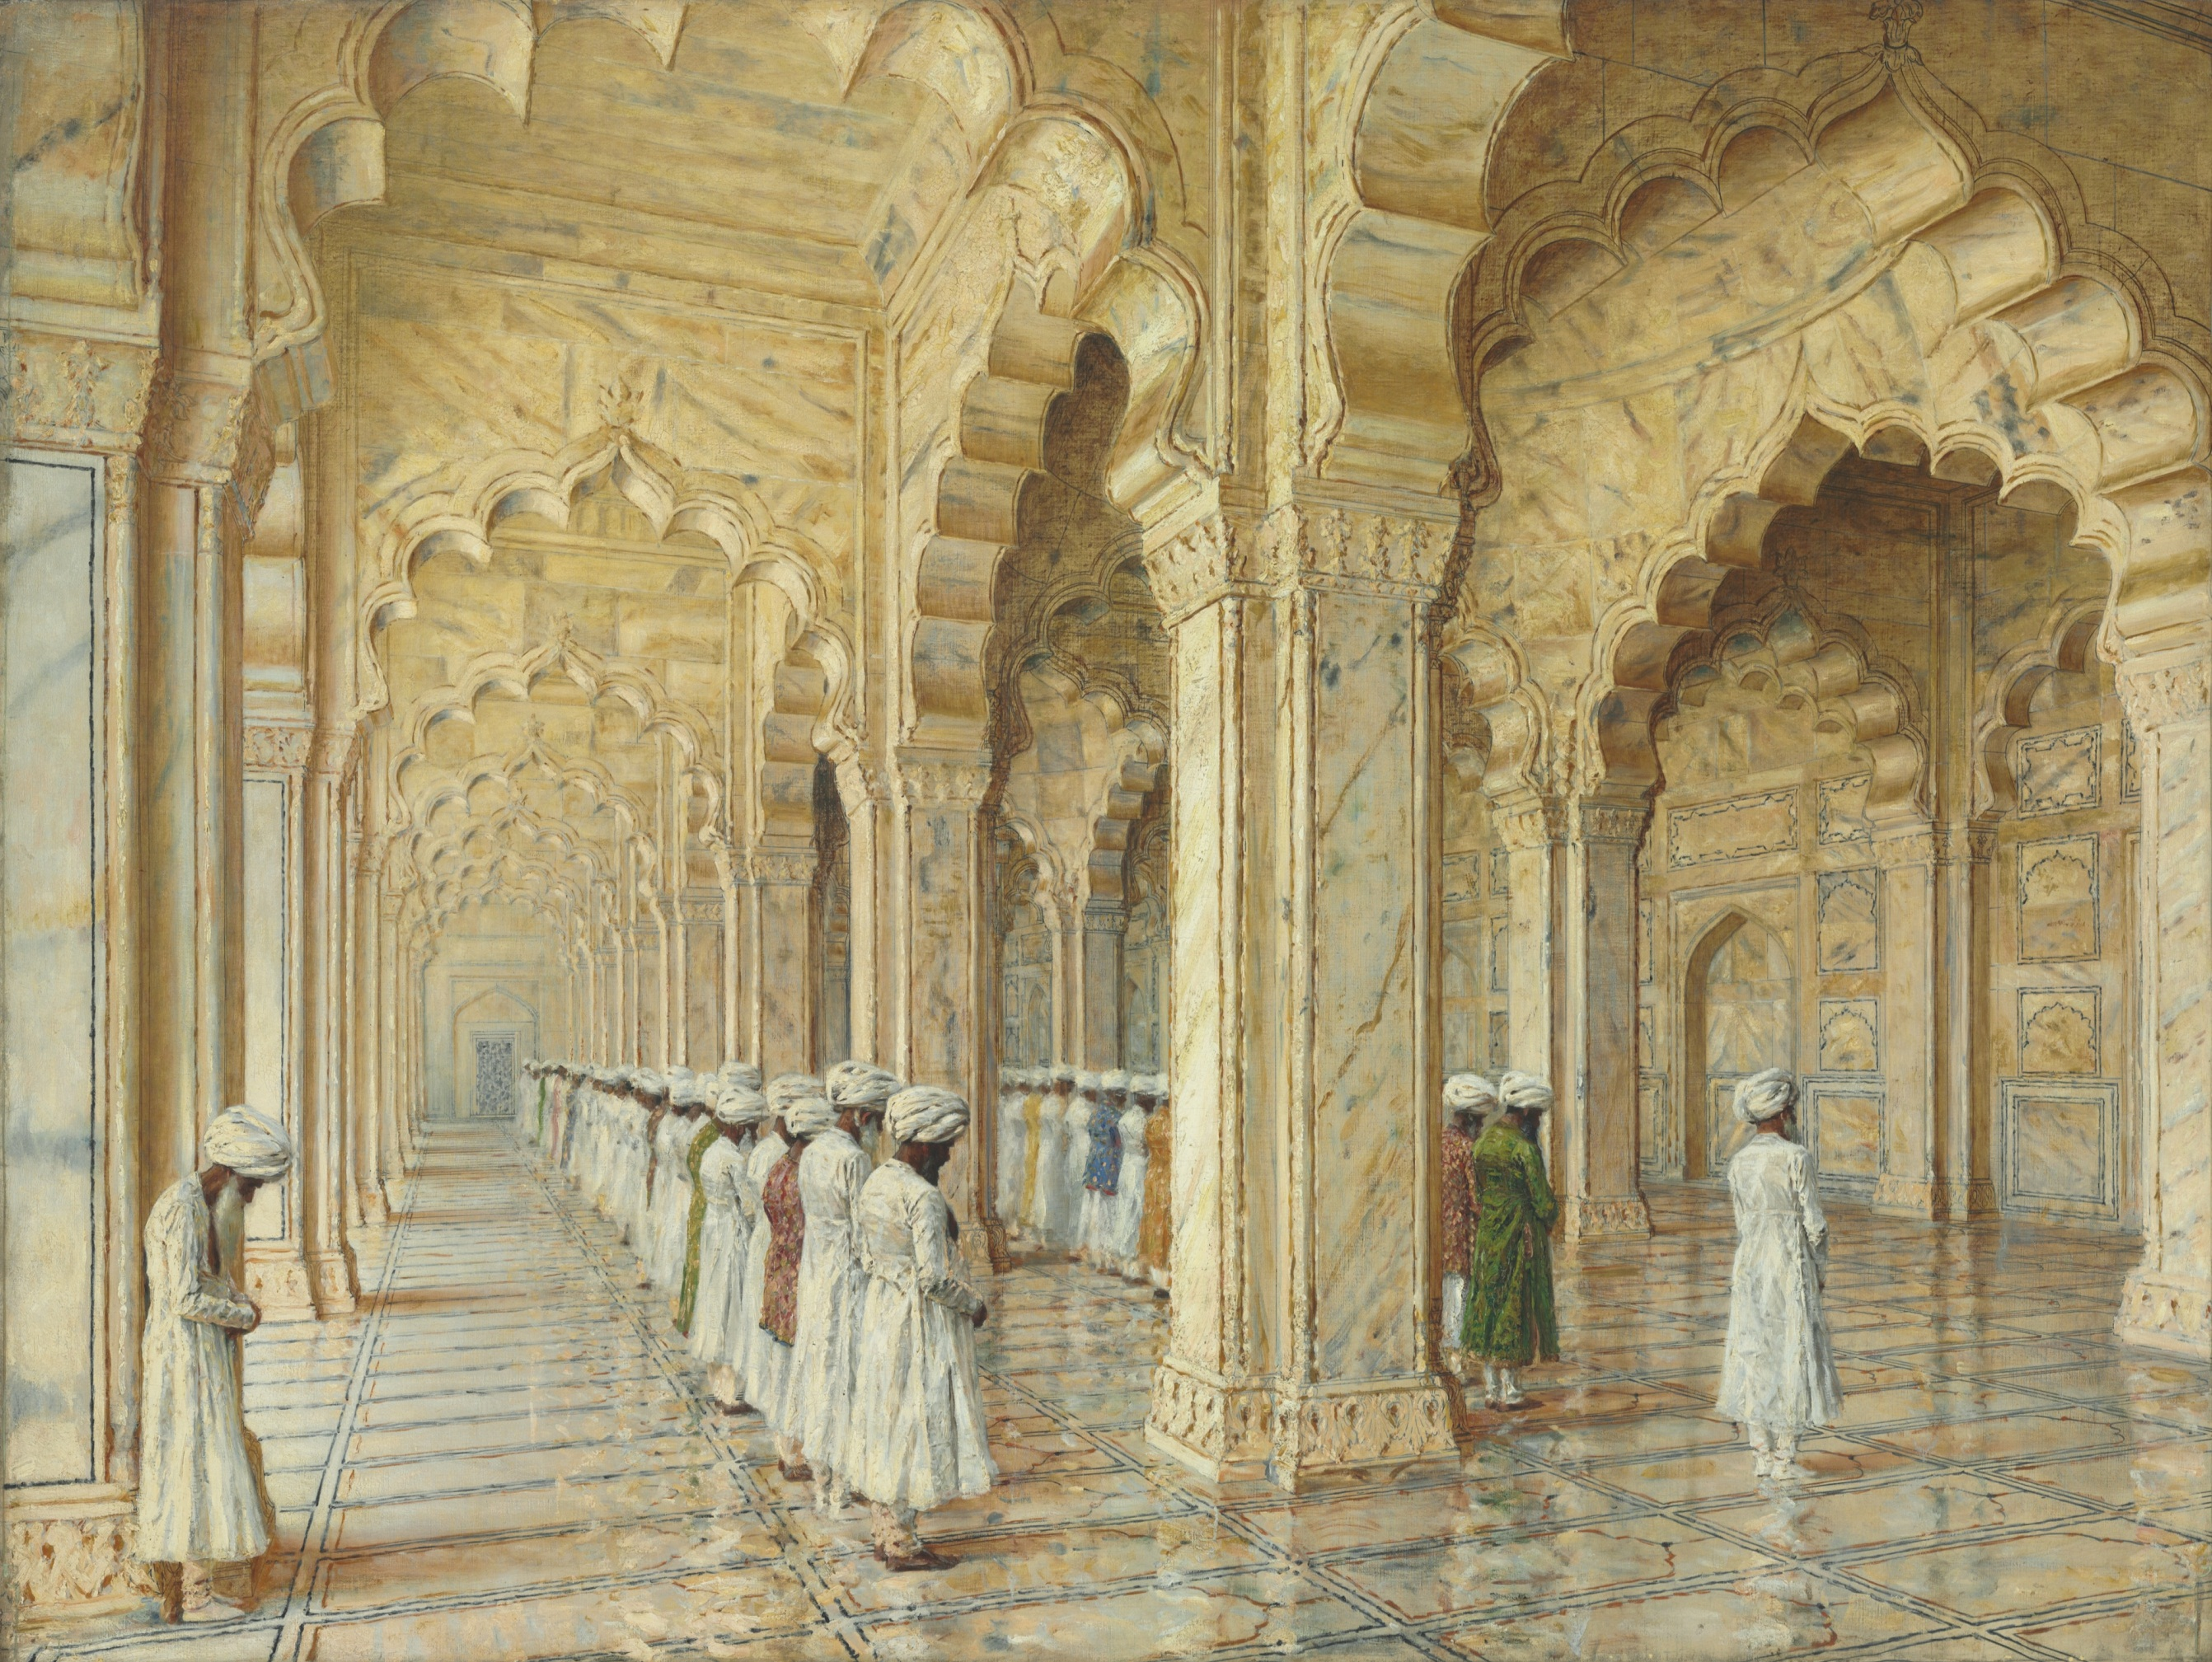 Vasily-Vereshchagin-Pearl-Mosque-at-Agra-Courtesy-of-Christies